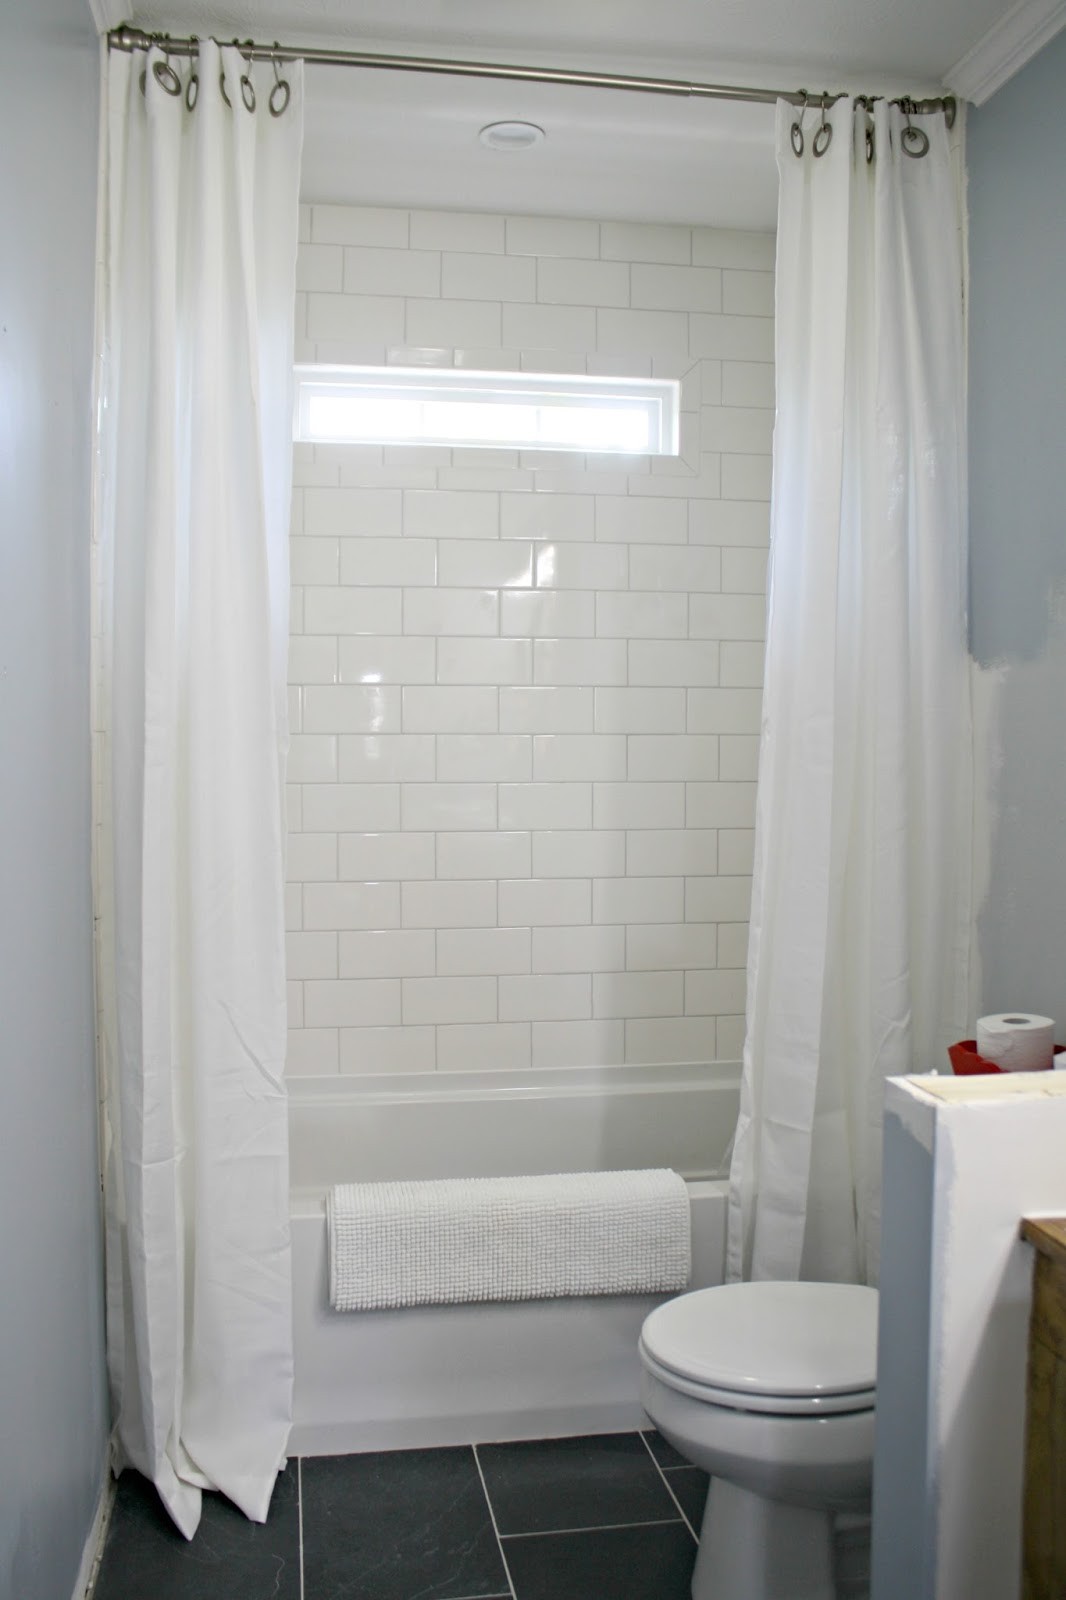 How To Use Drapes On Shower For Double Curtain Look